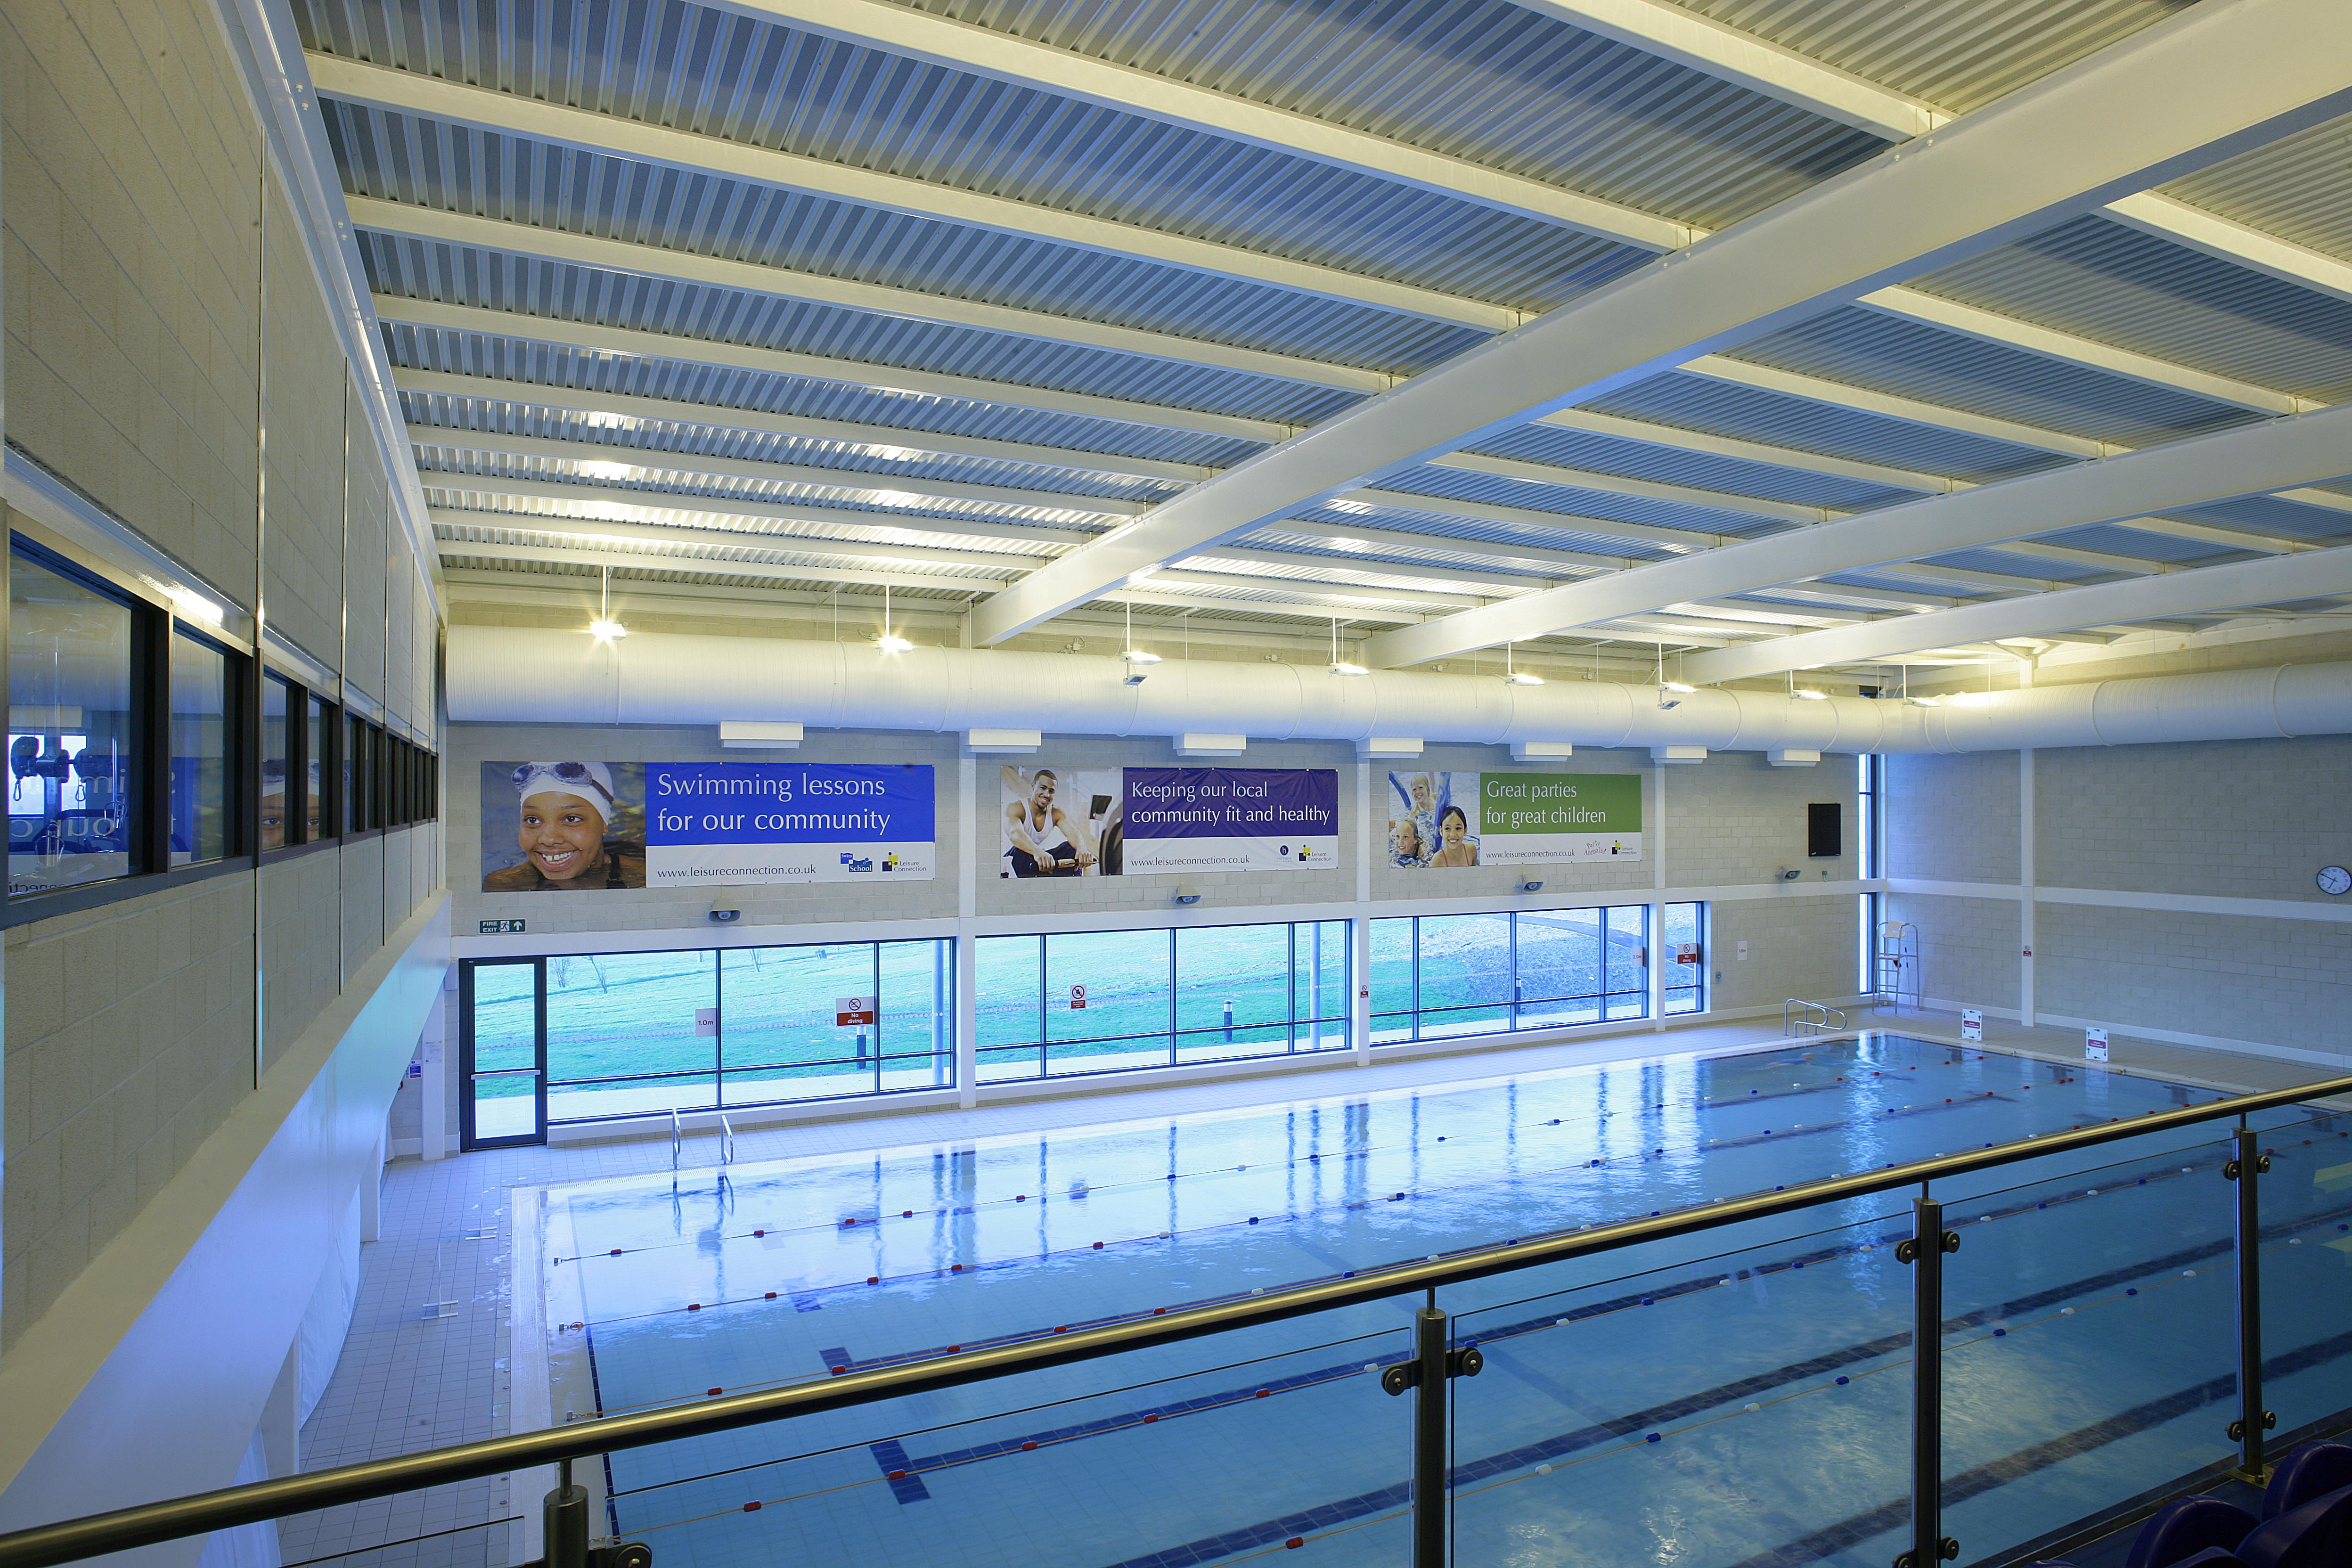 The new Aqua Zumba classes offer a challenging water-based workout that is cardio-conditioning, body toning and exhilarating